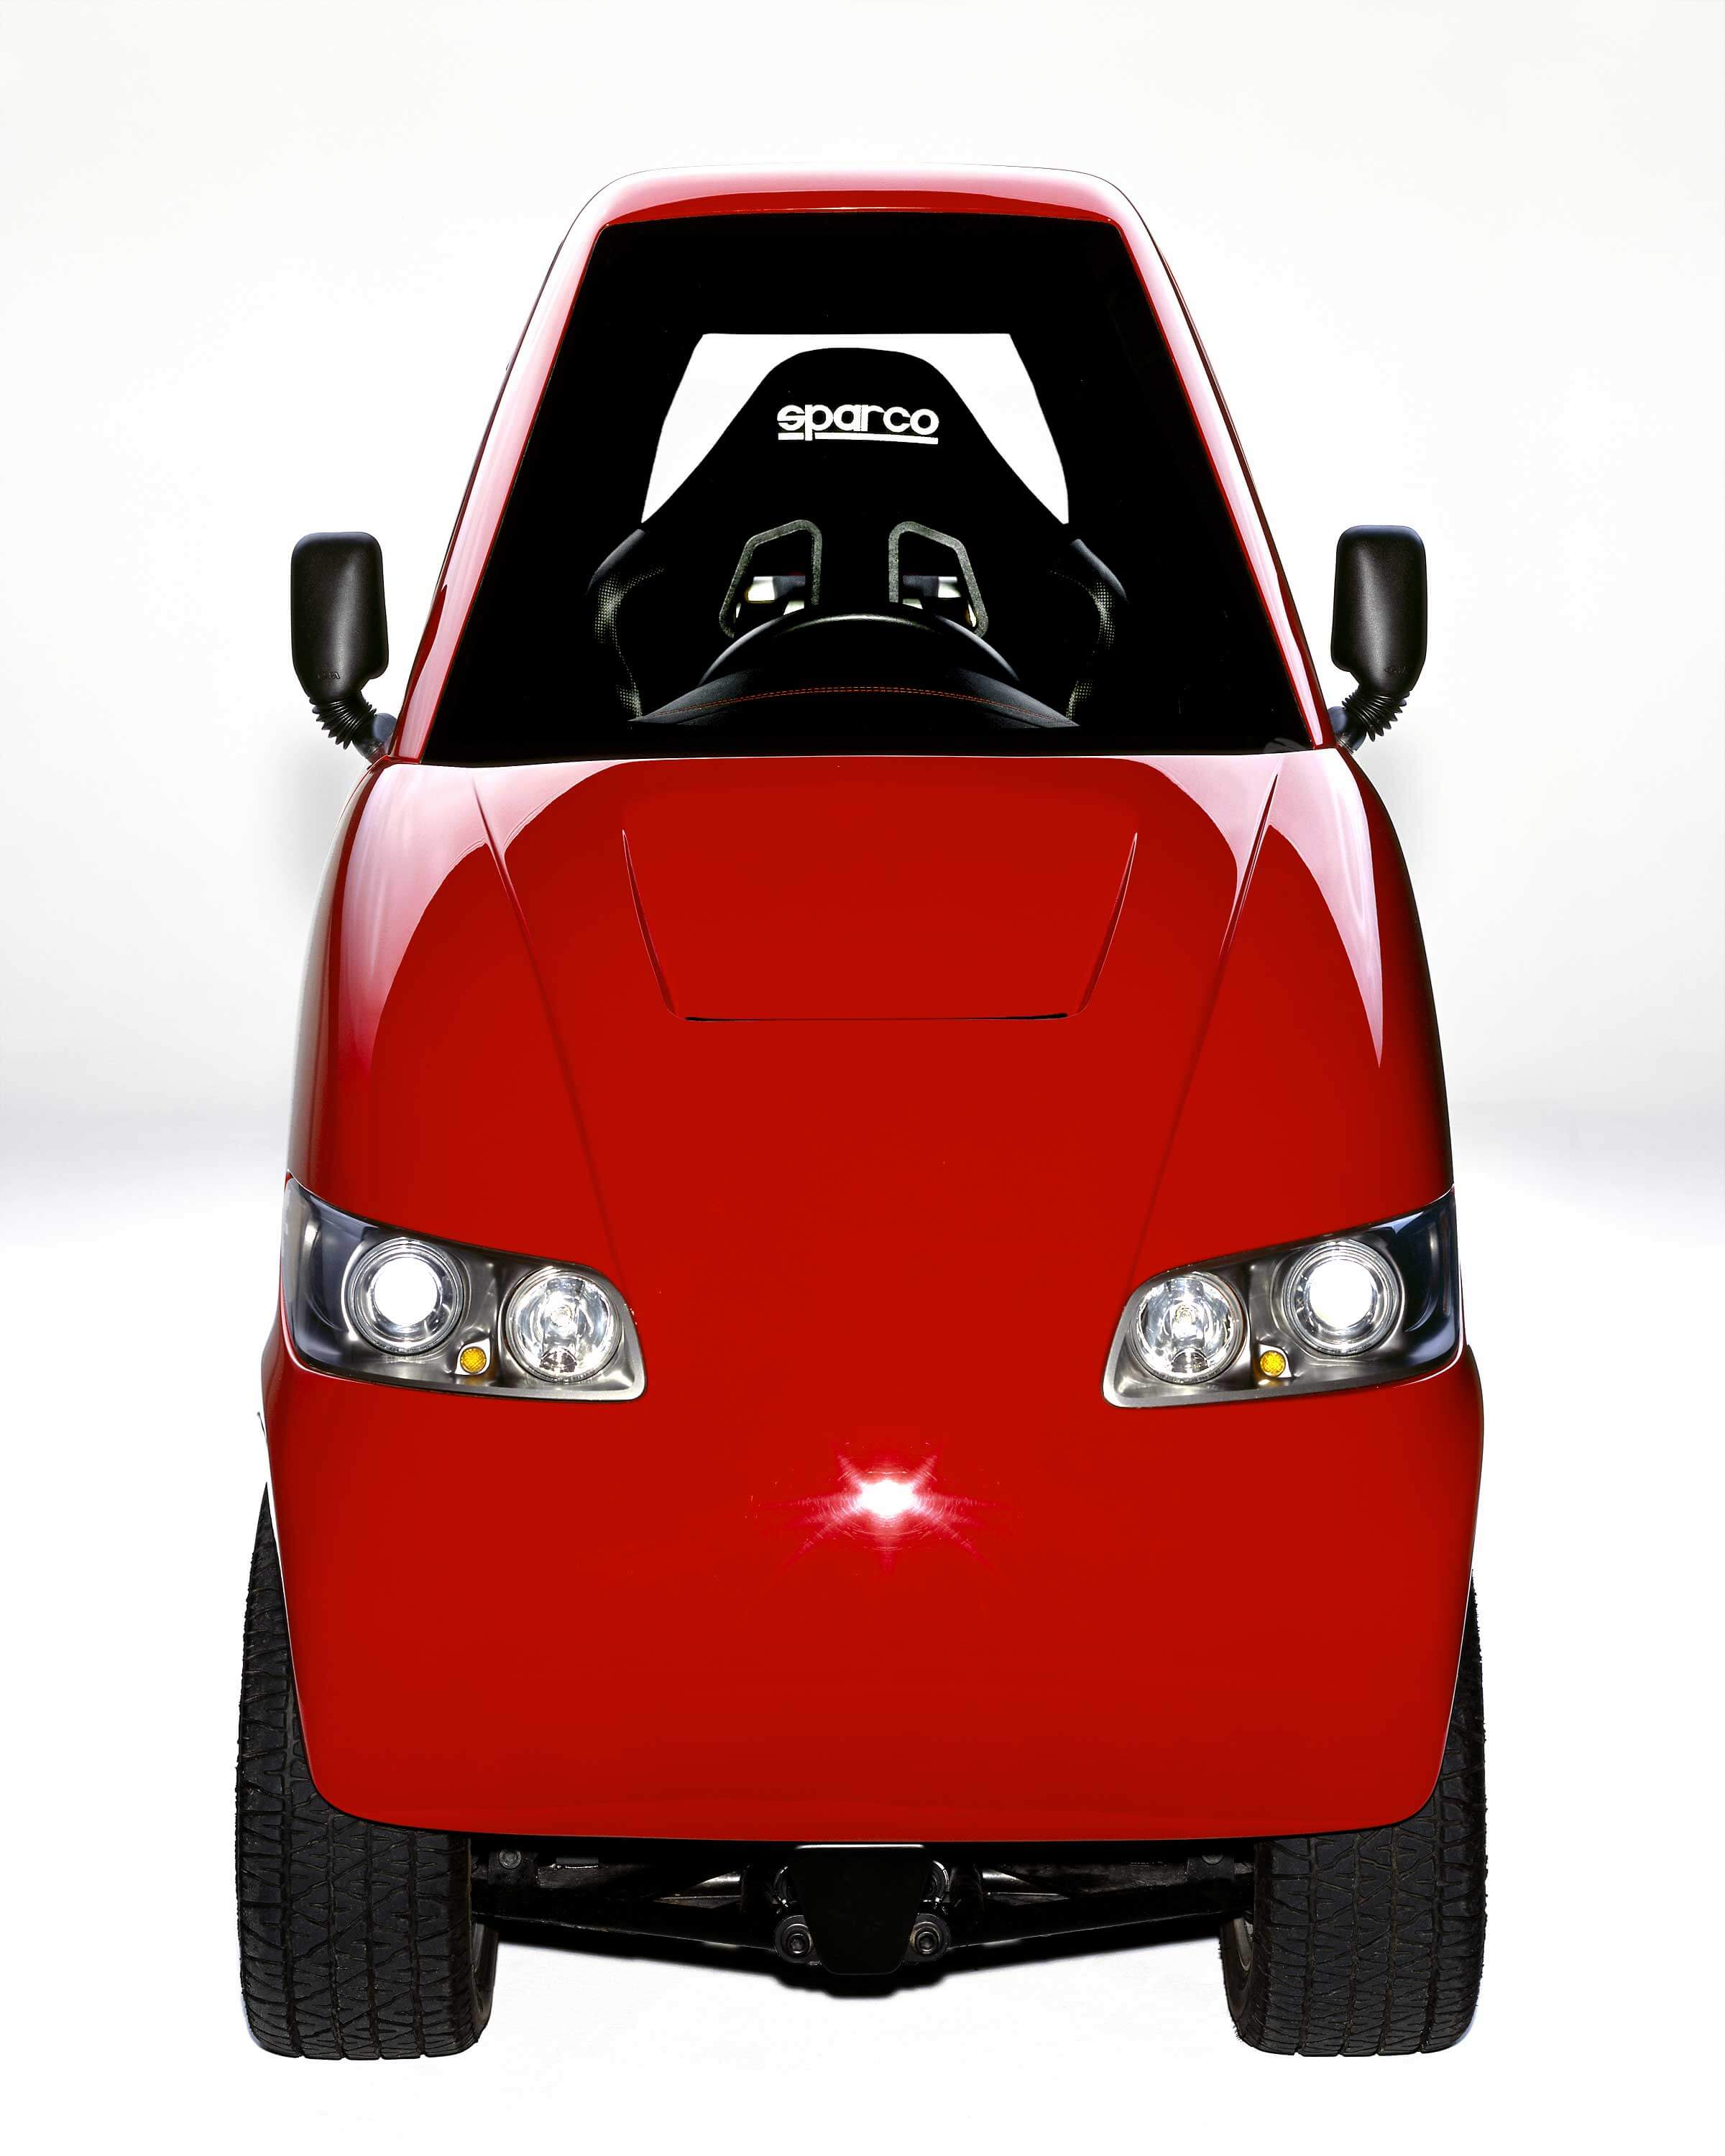 The worlds fastest electric car -  7 Smallest And Fastest Electric Car Most Expensive Toys For Adults Image Source